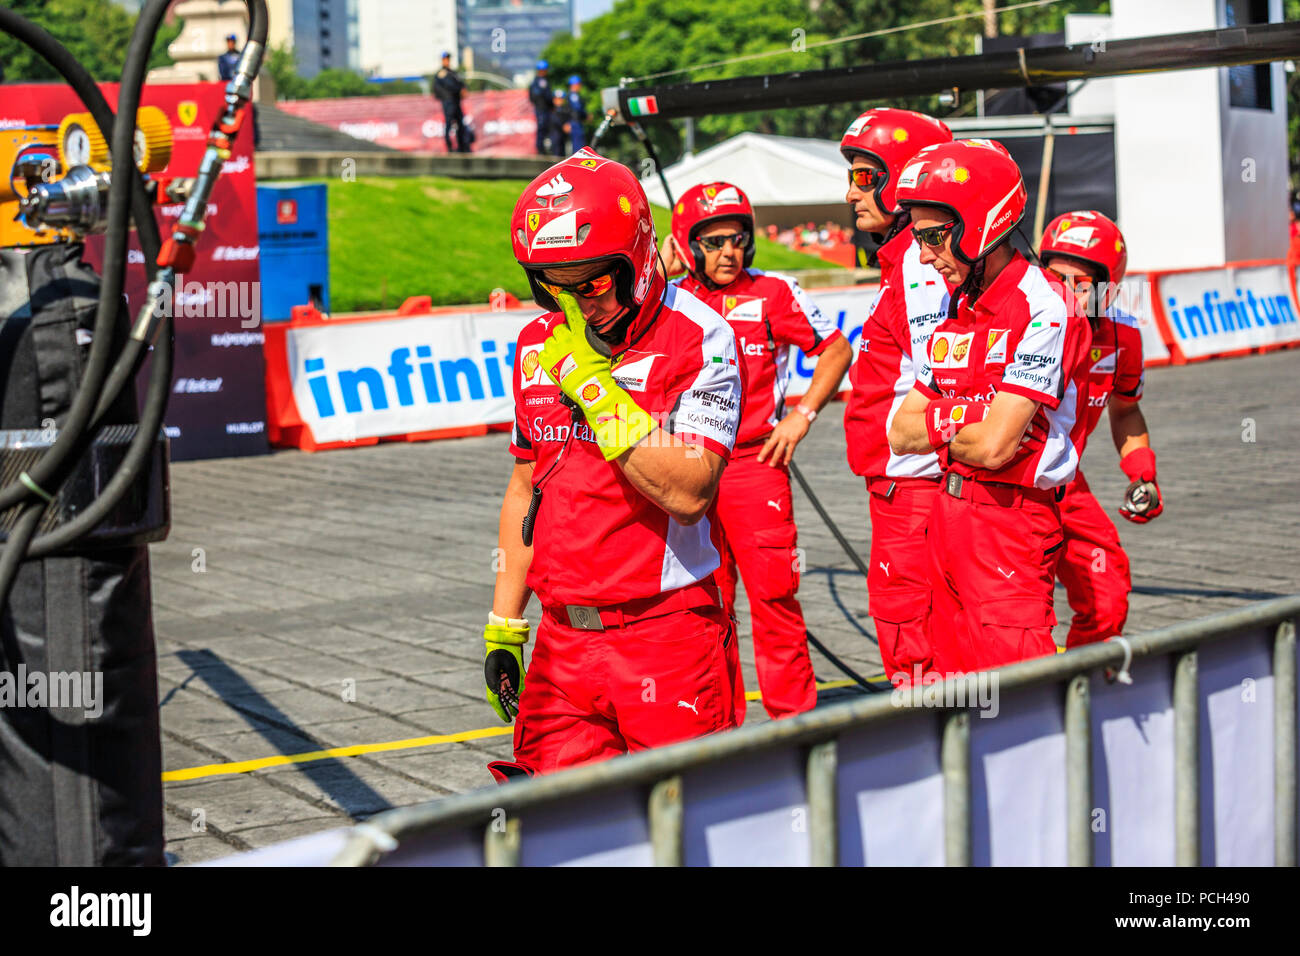 Mexico City, Mexico - July 08, 2015: Pit Crew waiting to Esteban Gutiérrez on its Ferrari F1 F60 Car to arrive to the Pit Stop for the Wheel Change. At the Scuderia Ferrari Street Demo By Telcel - Infinitum. - Stock Image